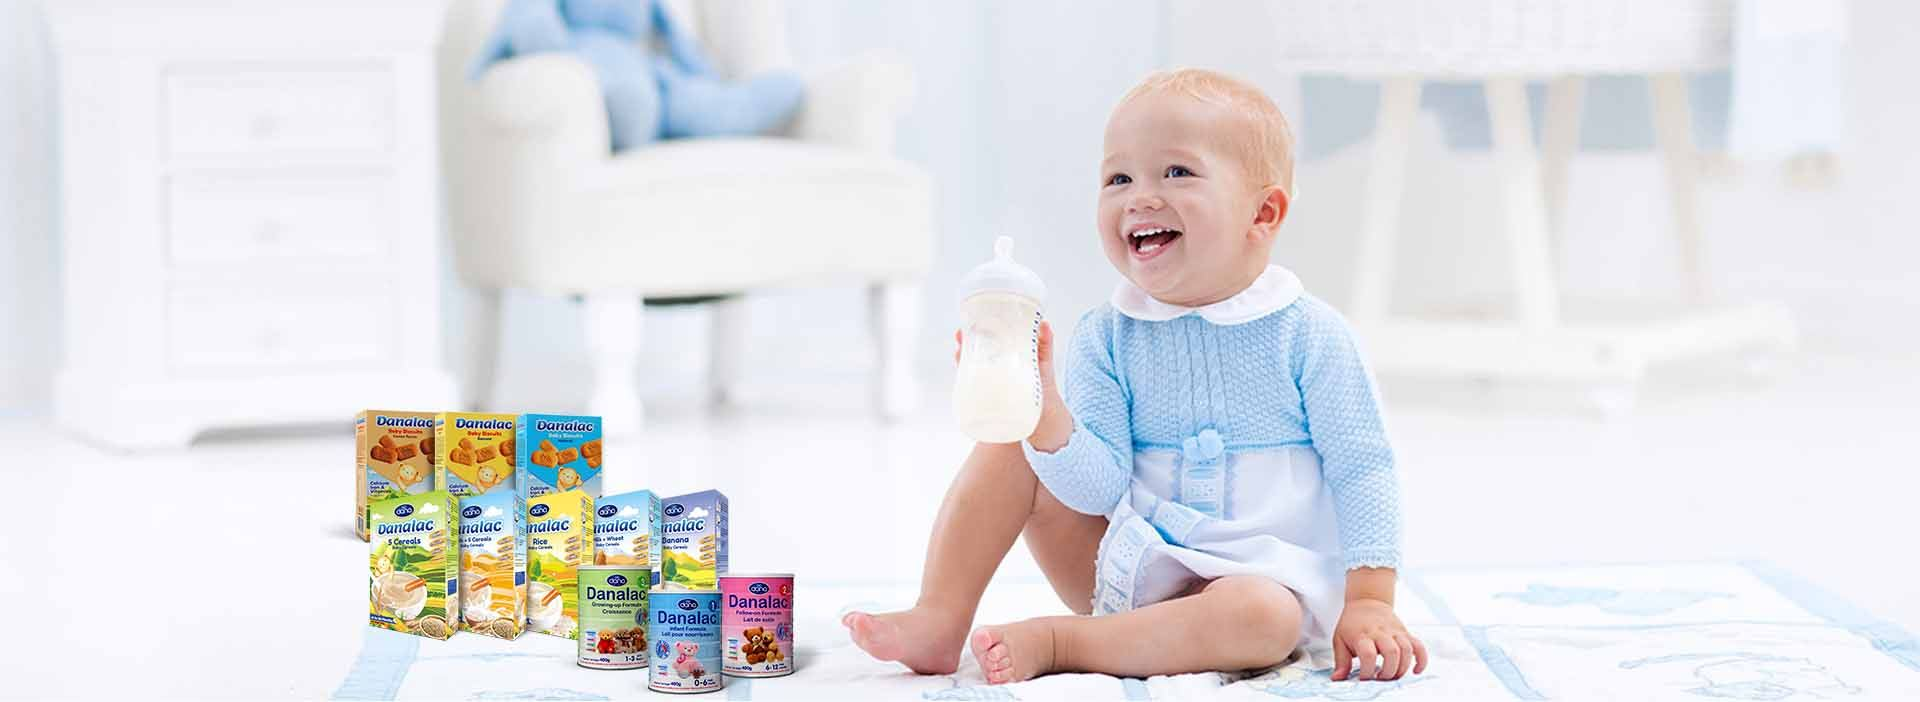 DANA Dairy is No. 1 world manufacturer and exported of top quality infant nutrition items. The product collection includes DANALAC infant formula in three stages, DANALAC baby cereals in 10 wonderful flavors, and also DANALAC baby biscuits in three awesome flavors.